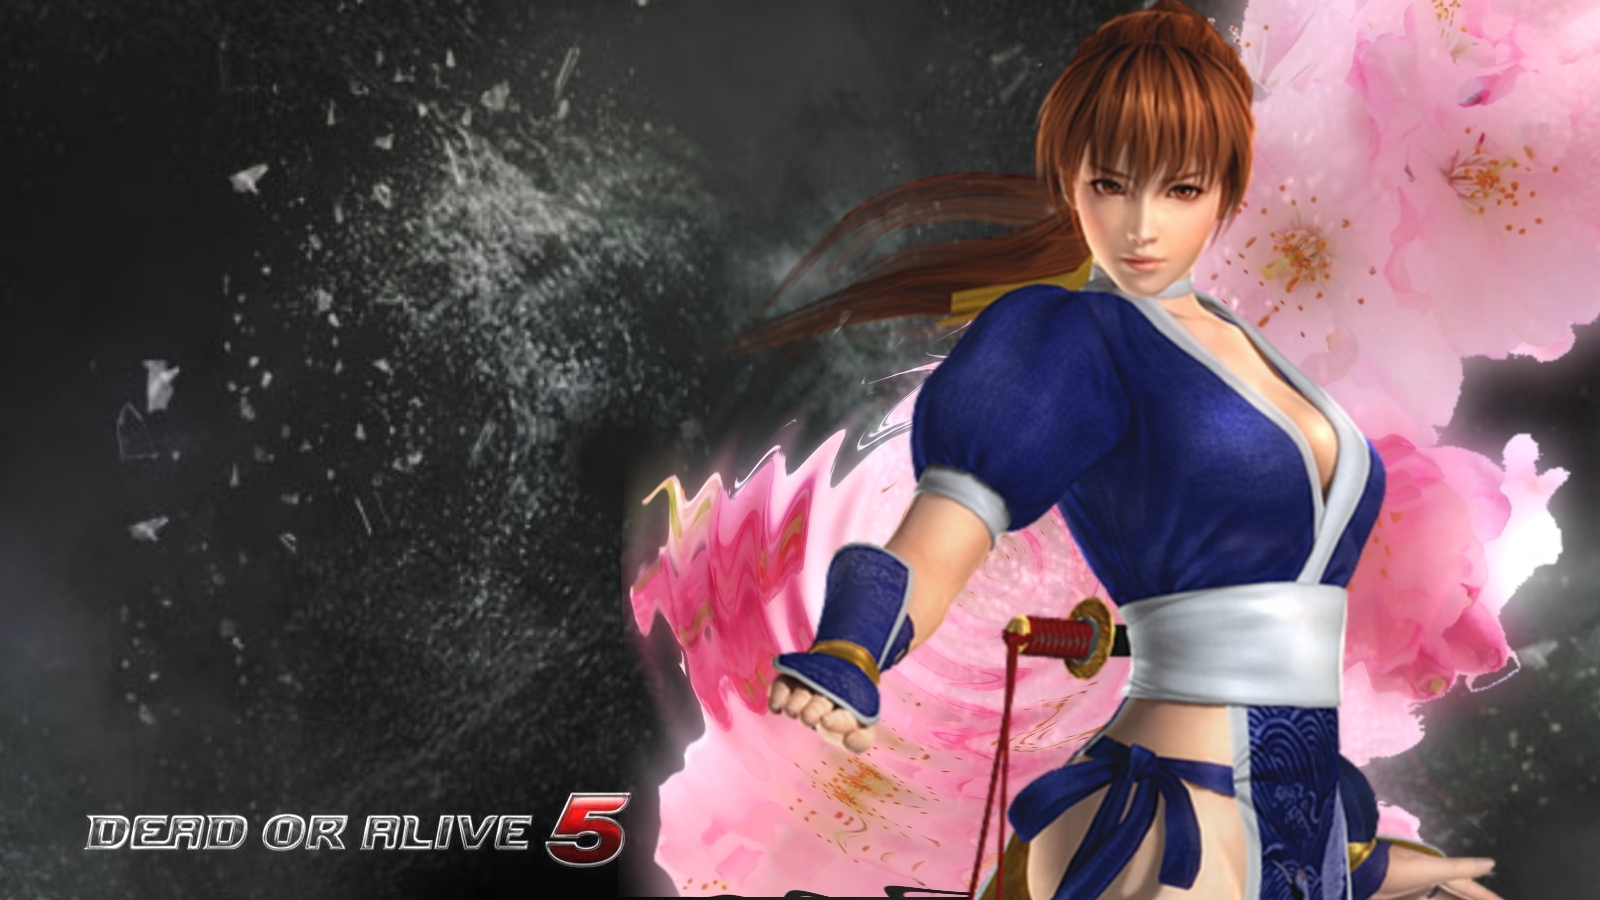 Beauty Re Rendered Dead or Alive 5 Wallpaper 1600x900